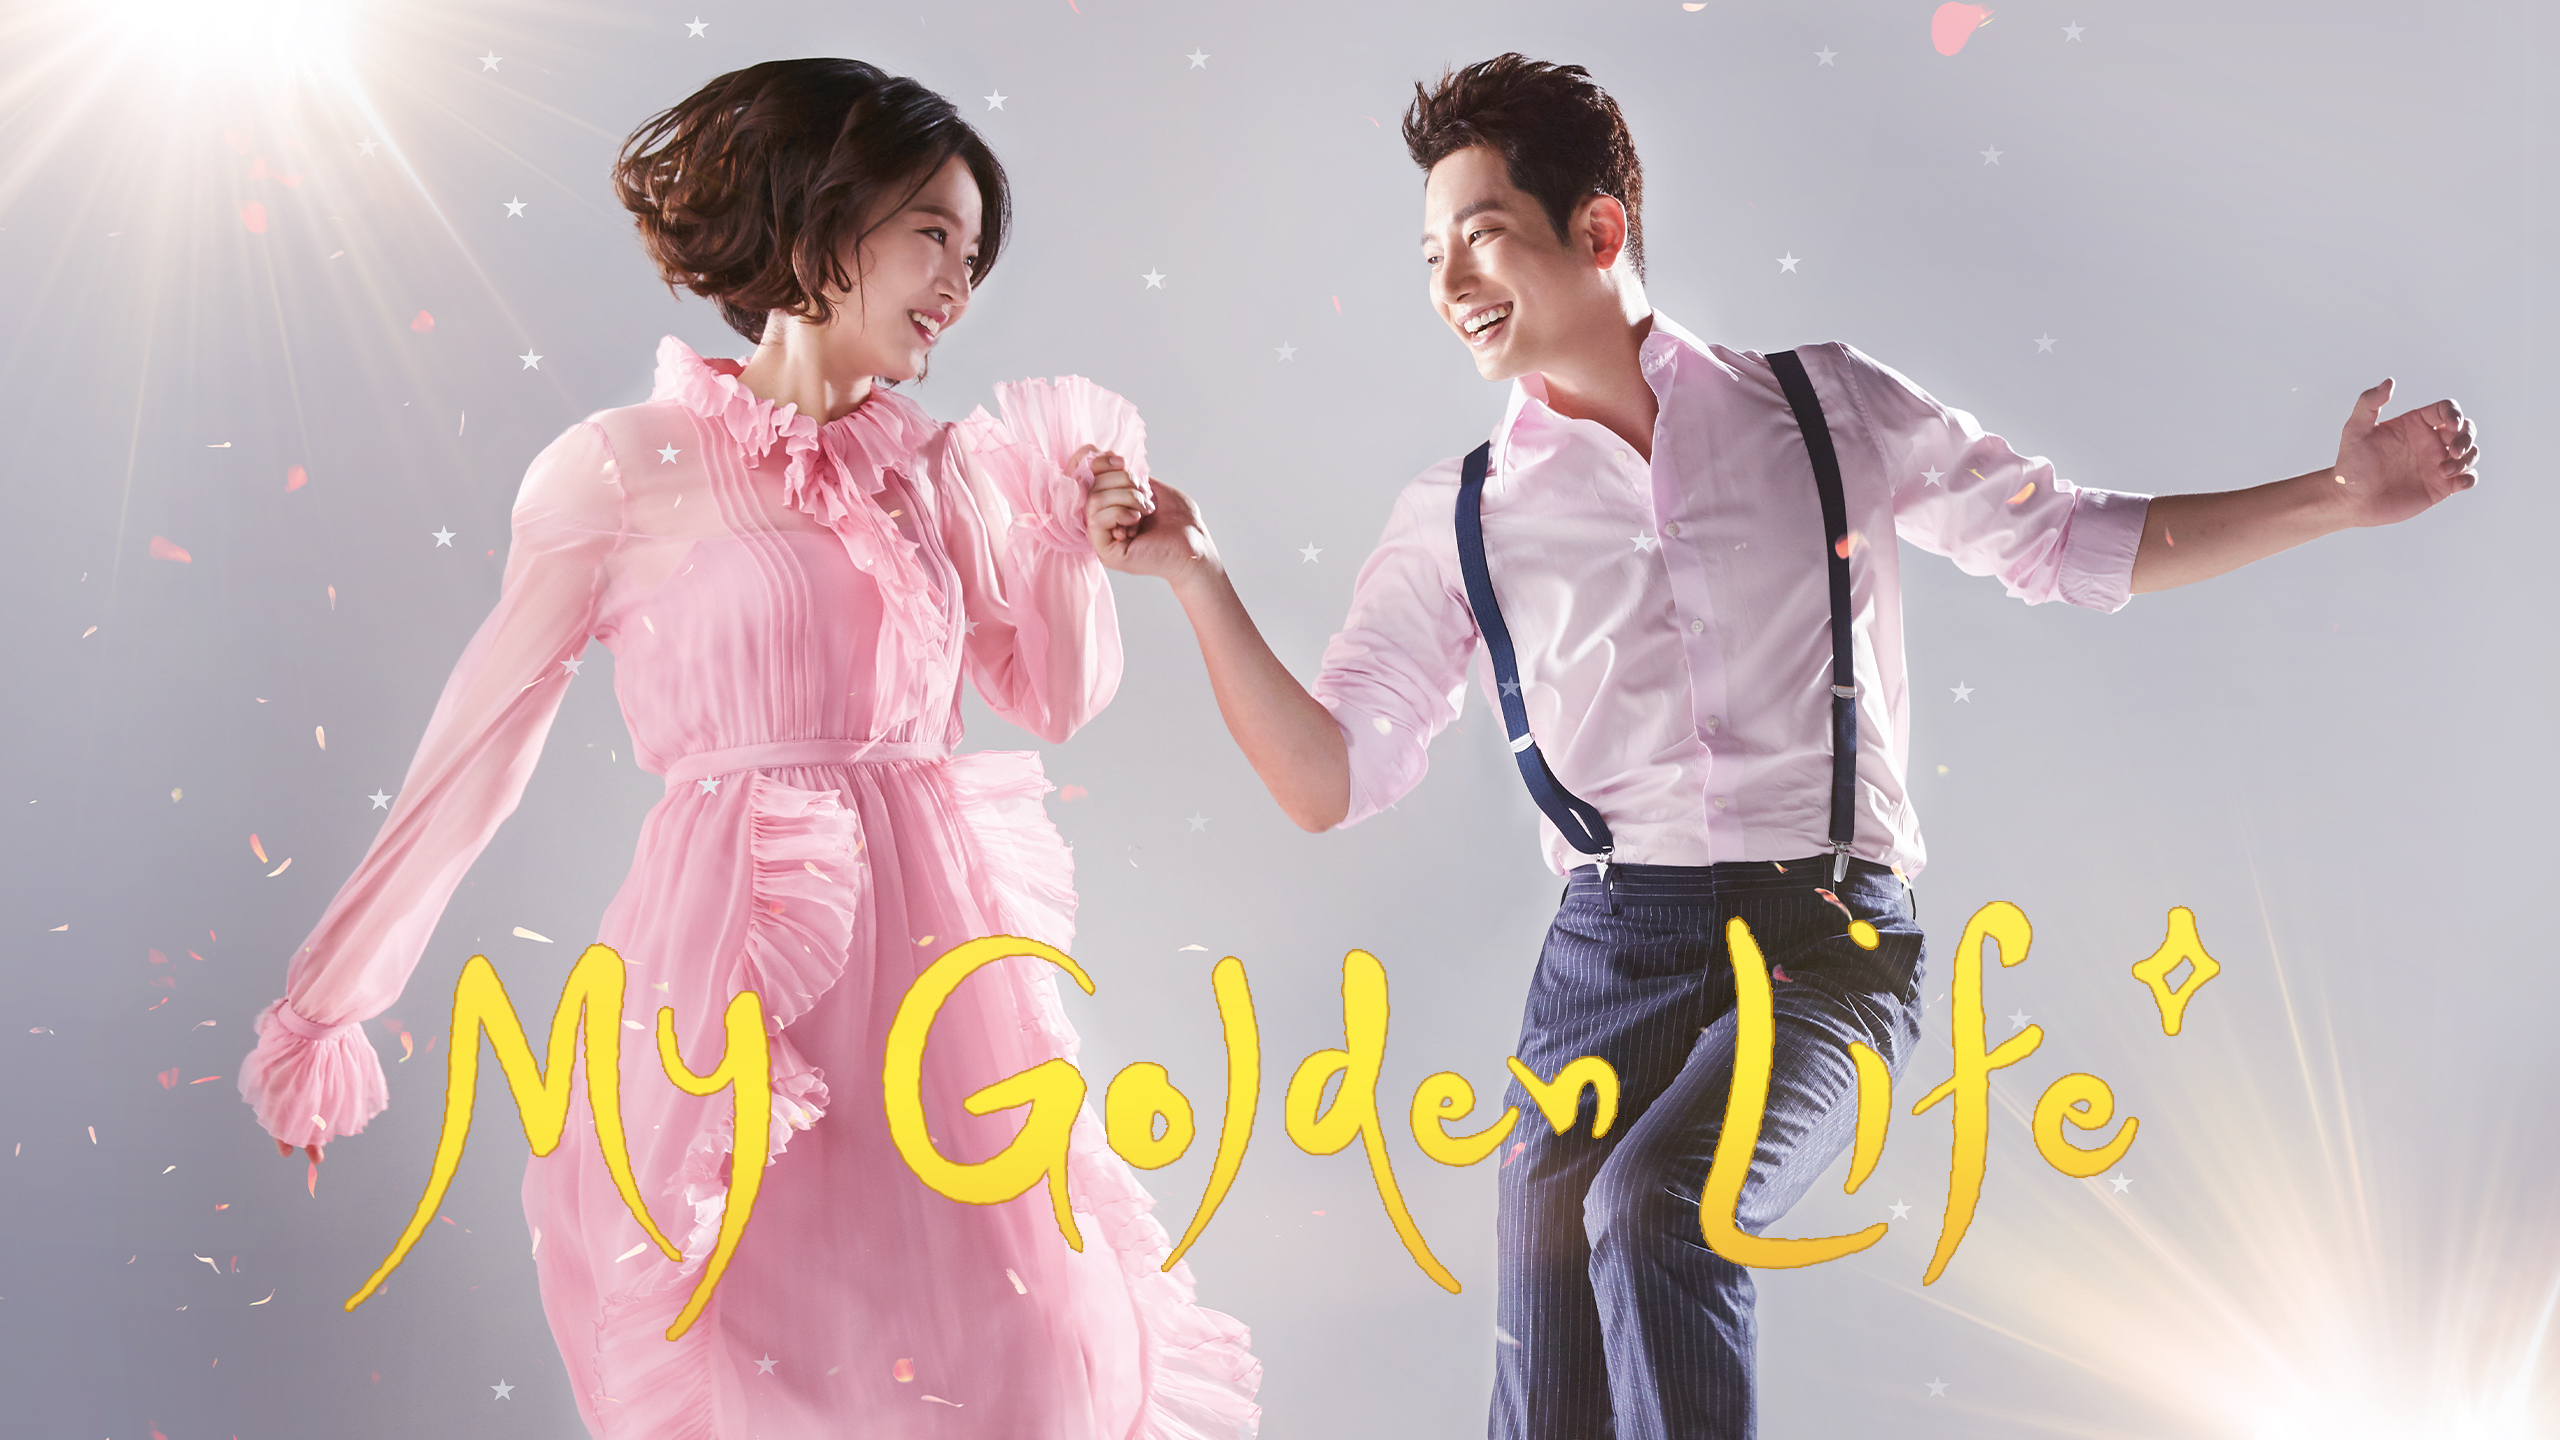 My-Golden-Life_EN_US_2560x1440